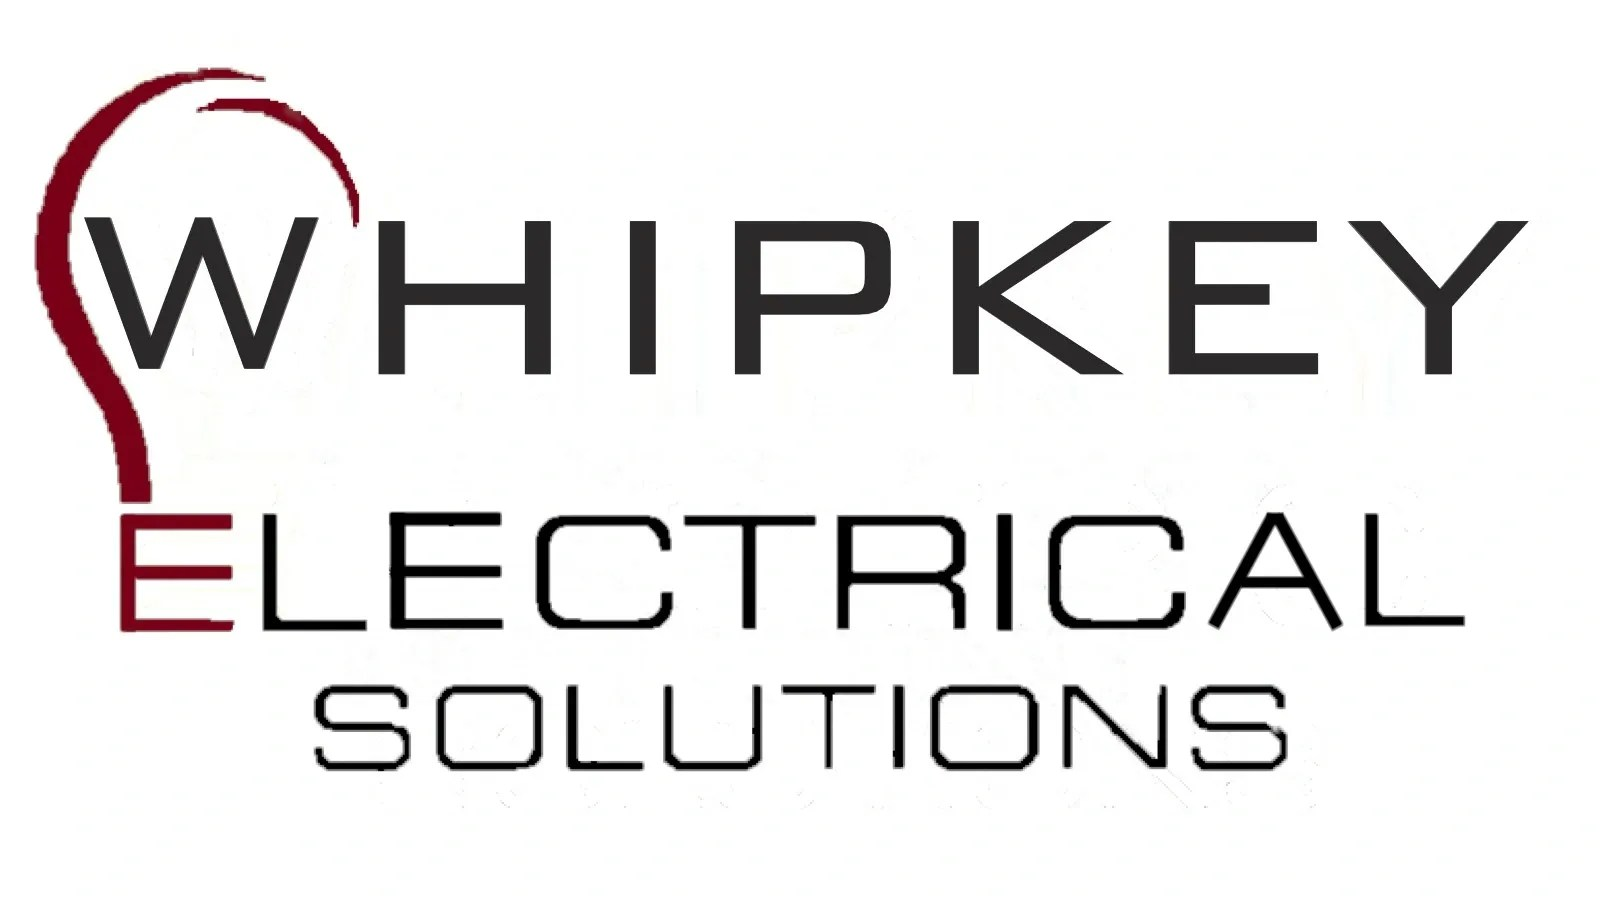 Whipkey Electrical Solutions